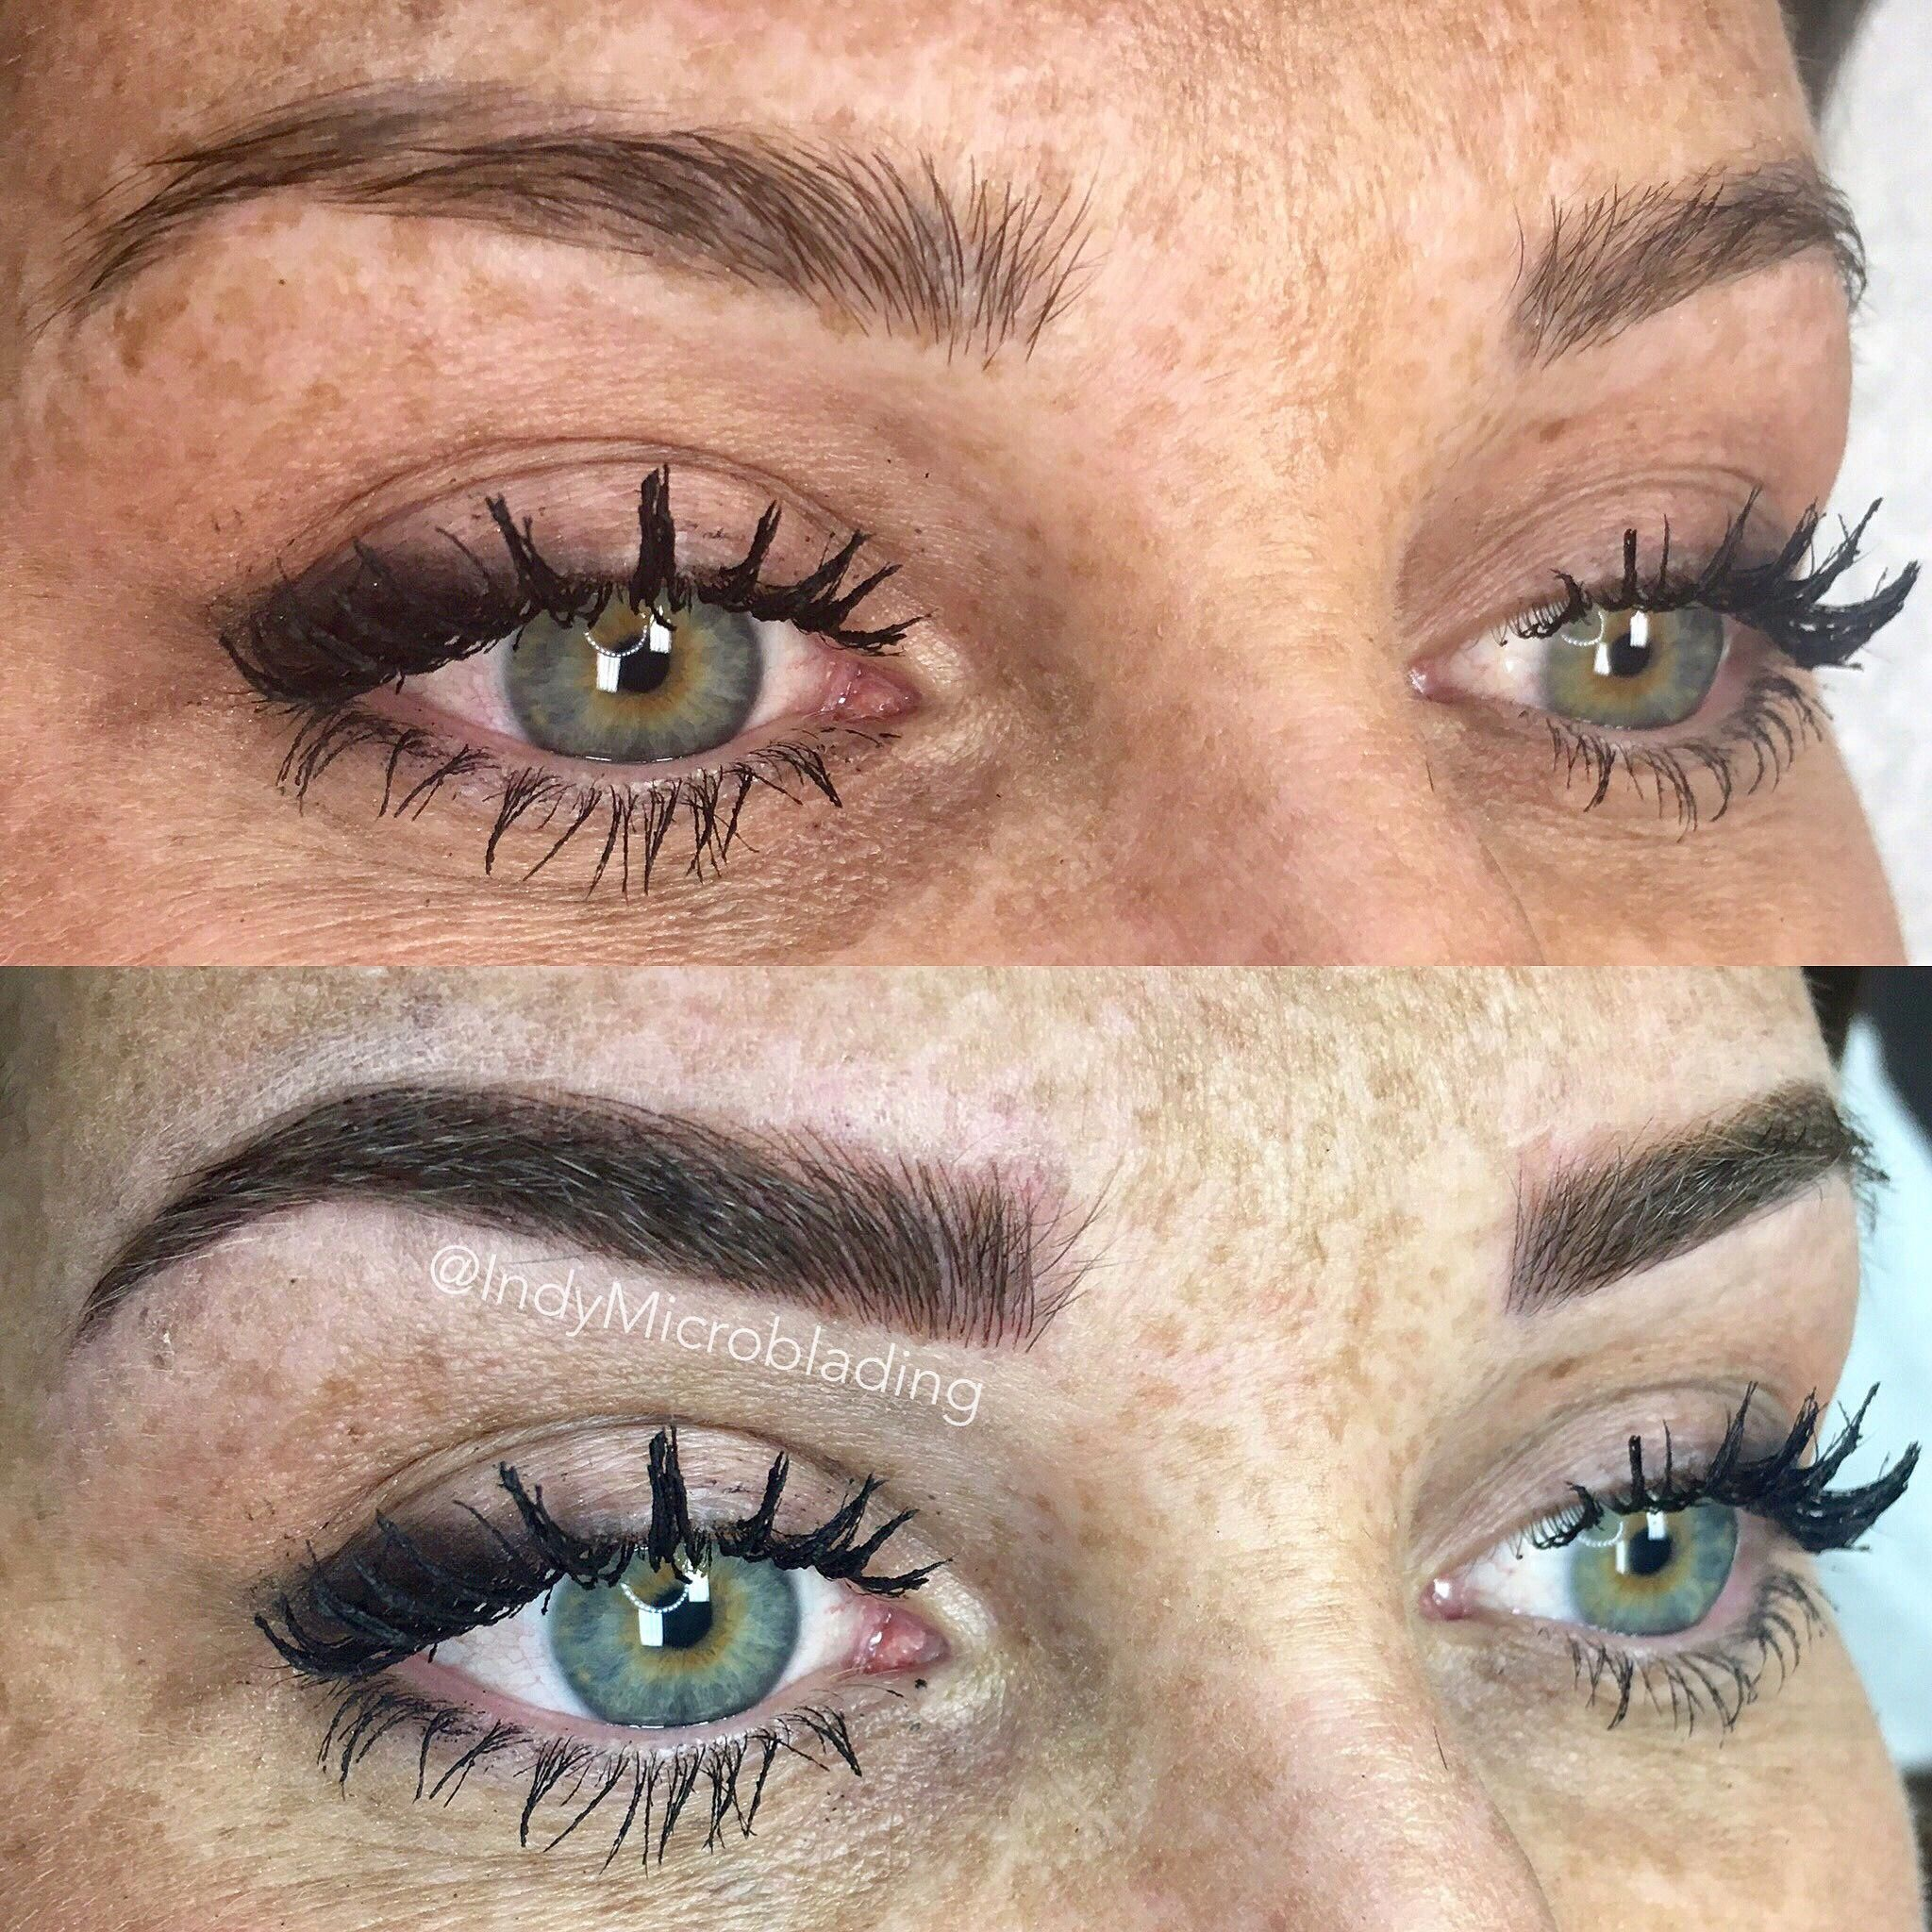 Park Art|My WordPress Blog_How Much Is Microblading Eyebrows In Uk